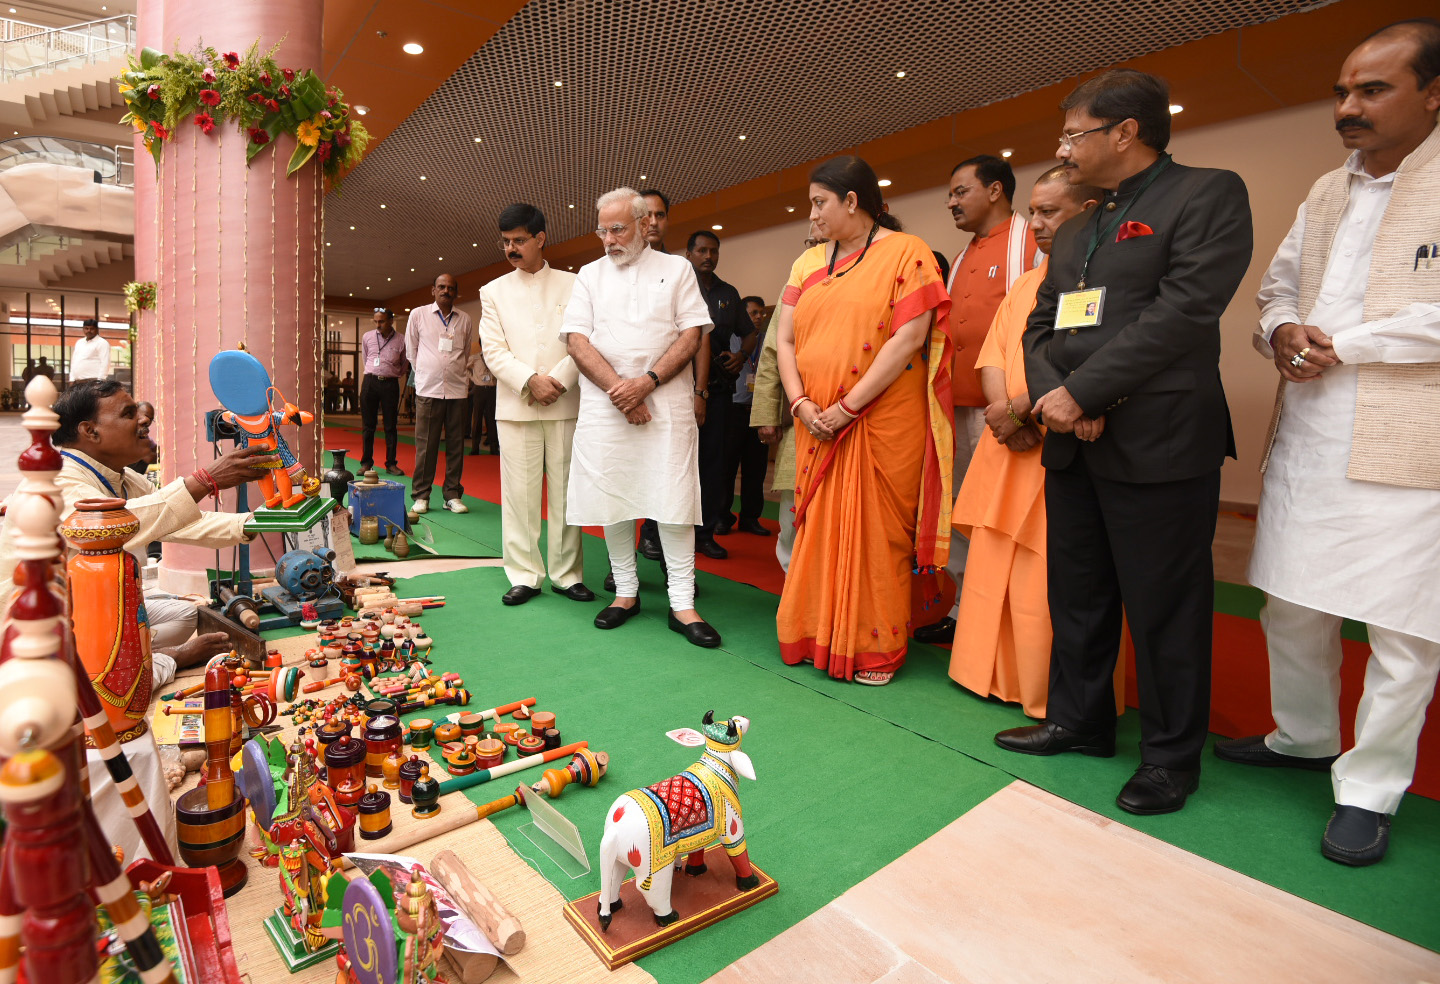 The Prime Minister, Shri Narendra Modi meets the artisans and weavers, at the Deendayal Hastkala Sankul, Varanasi, Uttar Pradesh on September 22, 2017. The Union Minister for Textiles and Information & Broadcasting, Smt. Smriti Irani, the Chief Minister, Uttar Pradesh, Yogi Adityanath, the Minister of State for Textiles, Shri Ajay Tamta and the Deputy Chief Minister, Uttar Pradesh, Shri Keshav Prasad Maurya are also seen.